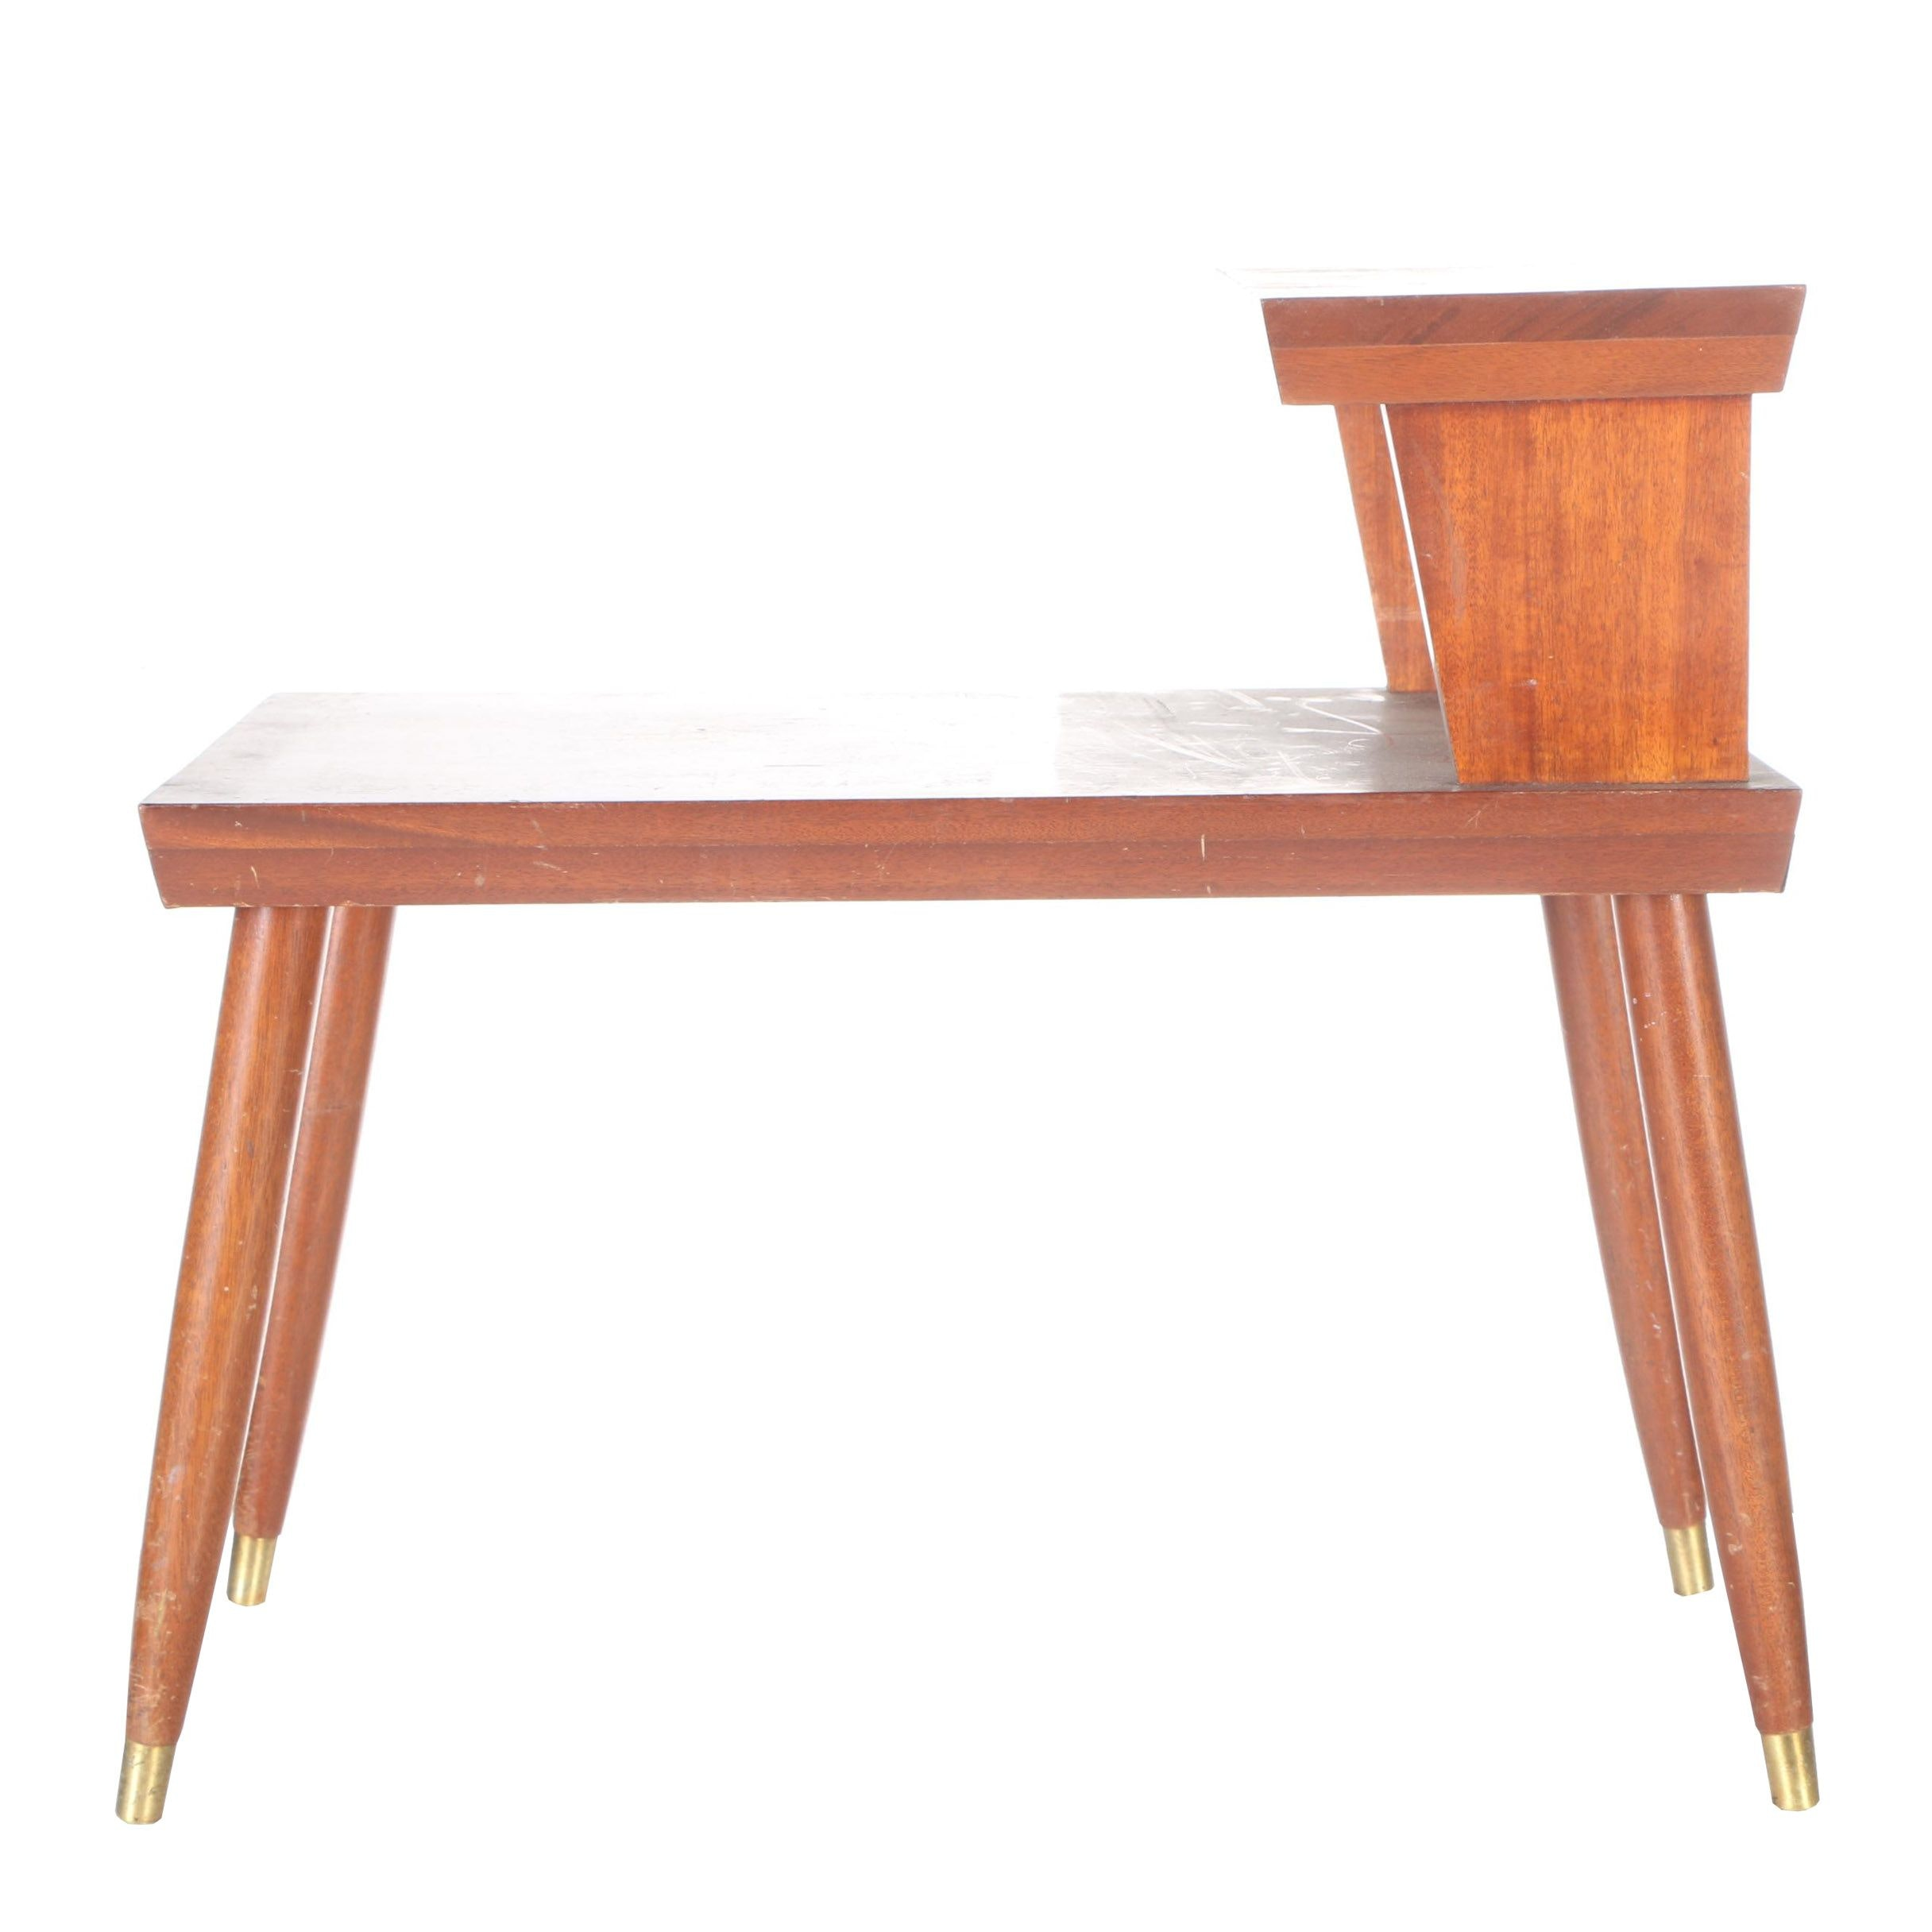 Mid Century Modern Two-Tier Wooden End Table